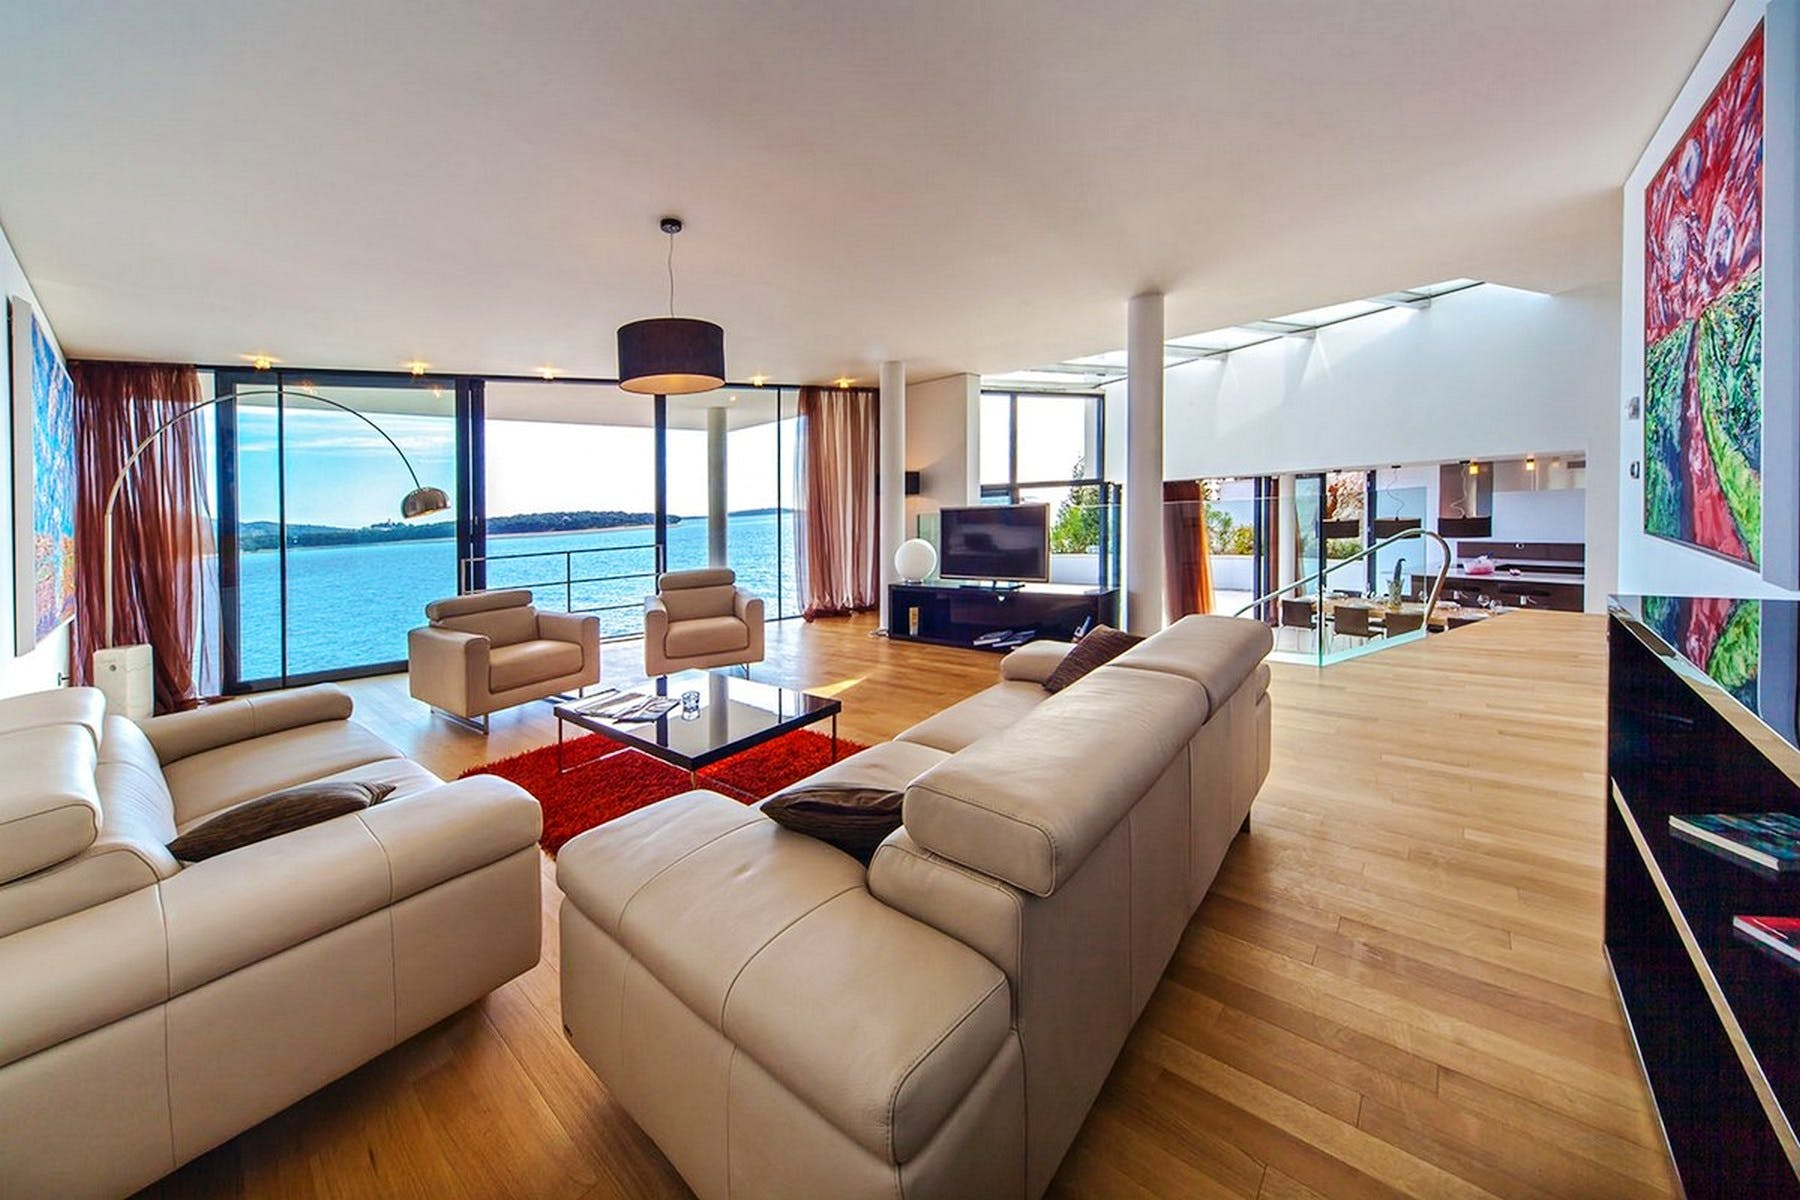 Spacious living area with sea view